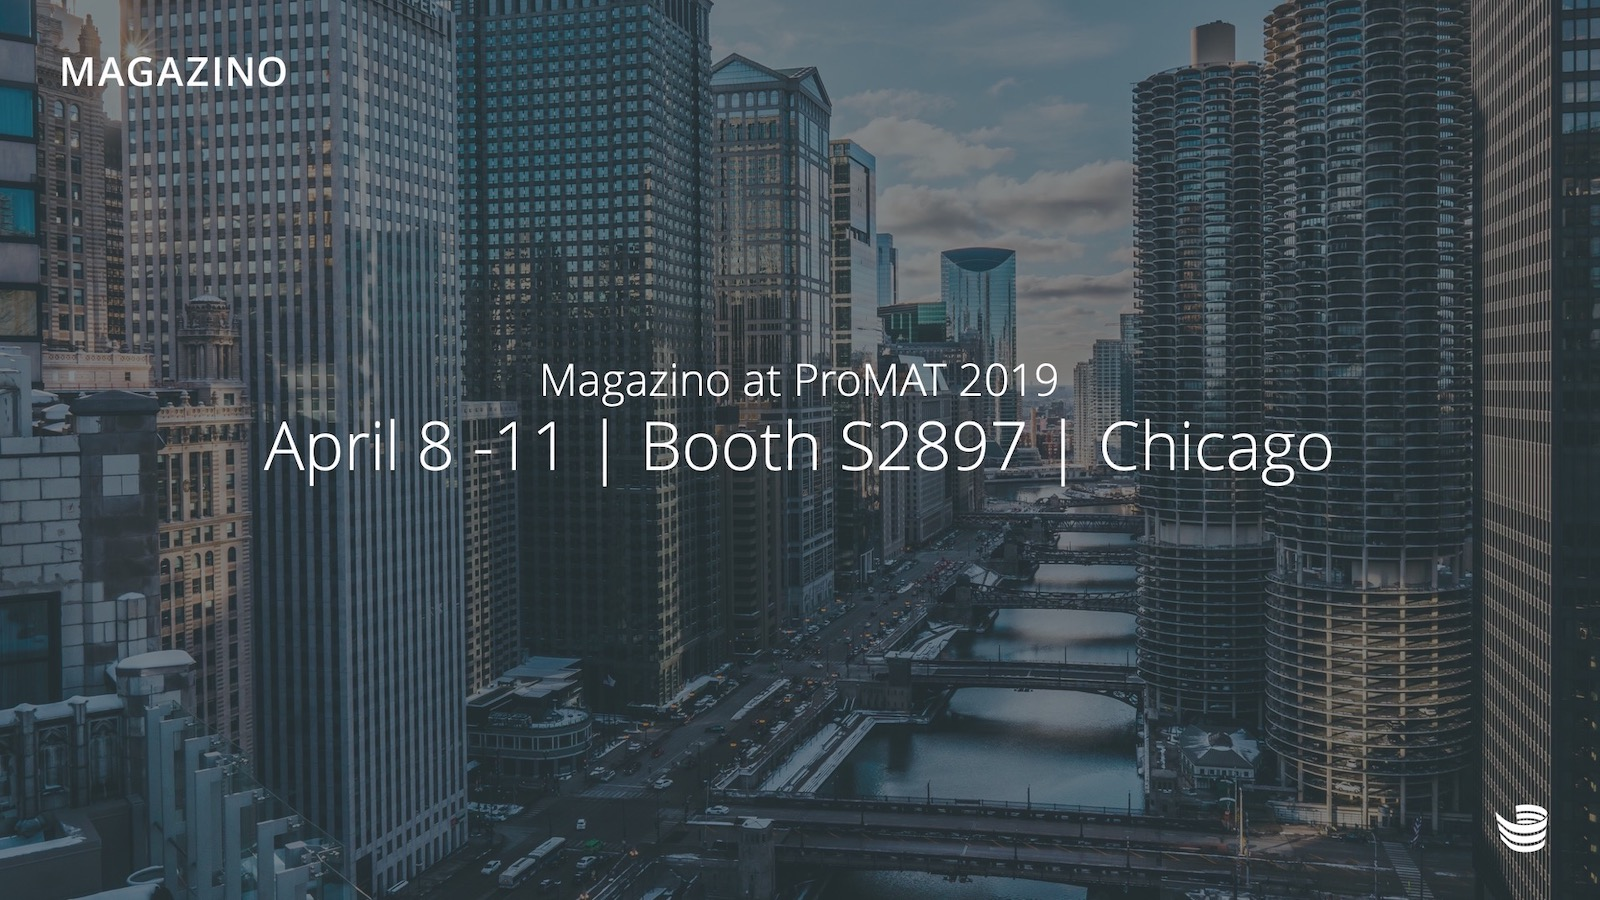 Magazino at ProMAT show 2019 in Chicago